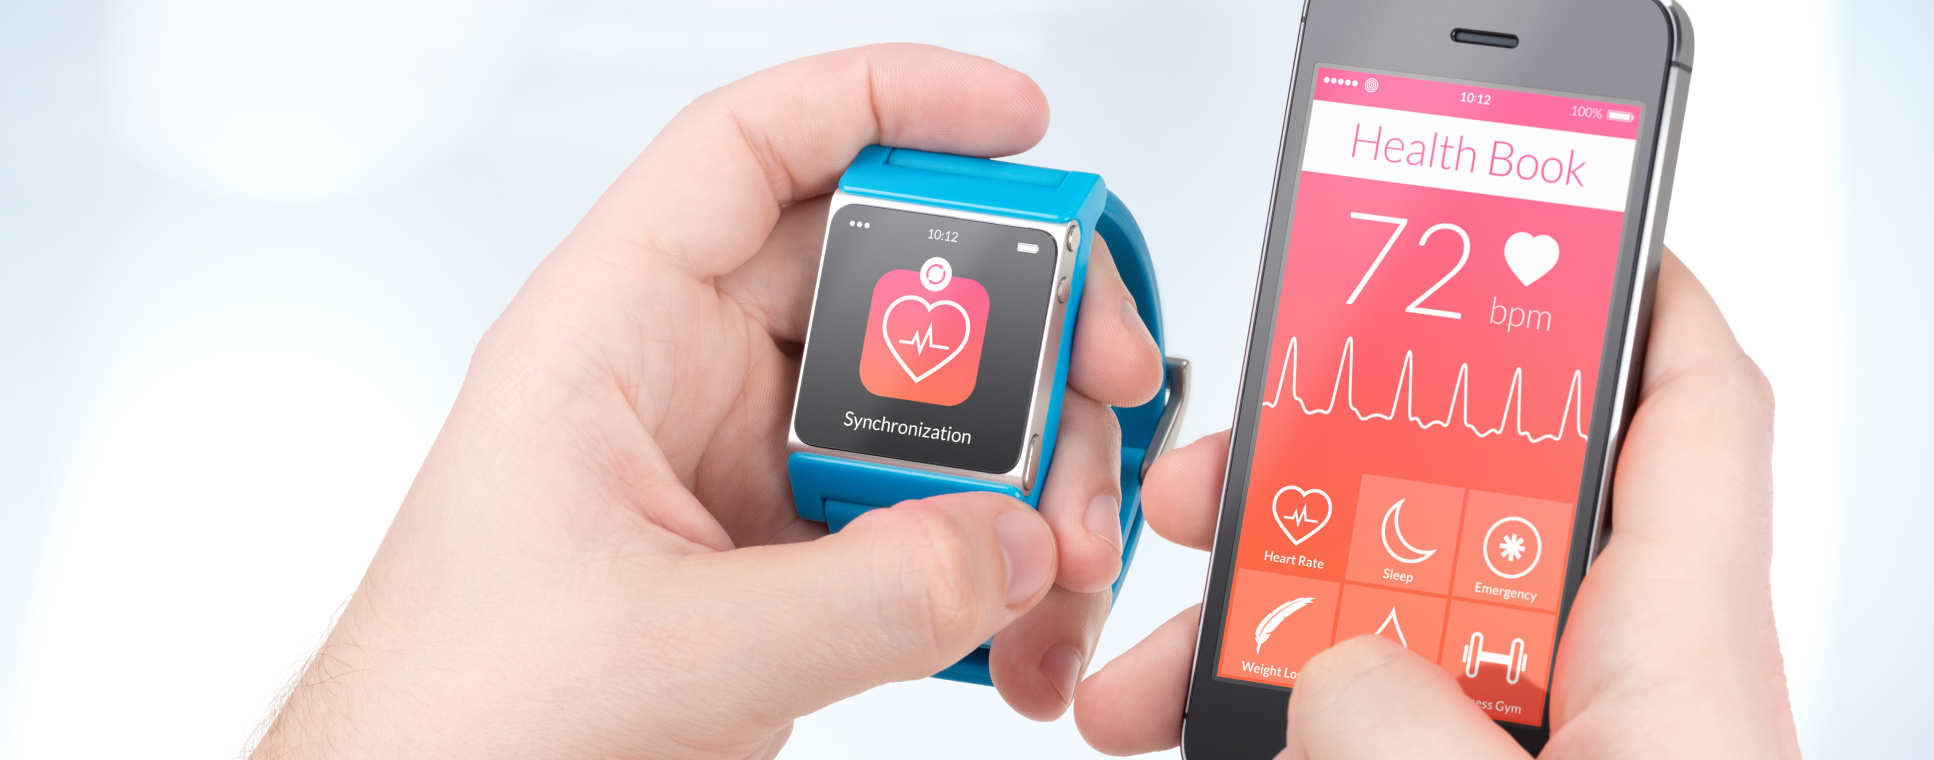 A pair of holds holding a phone and a smartwatch displaying health information